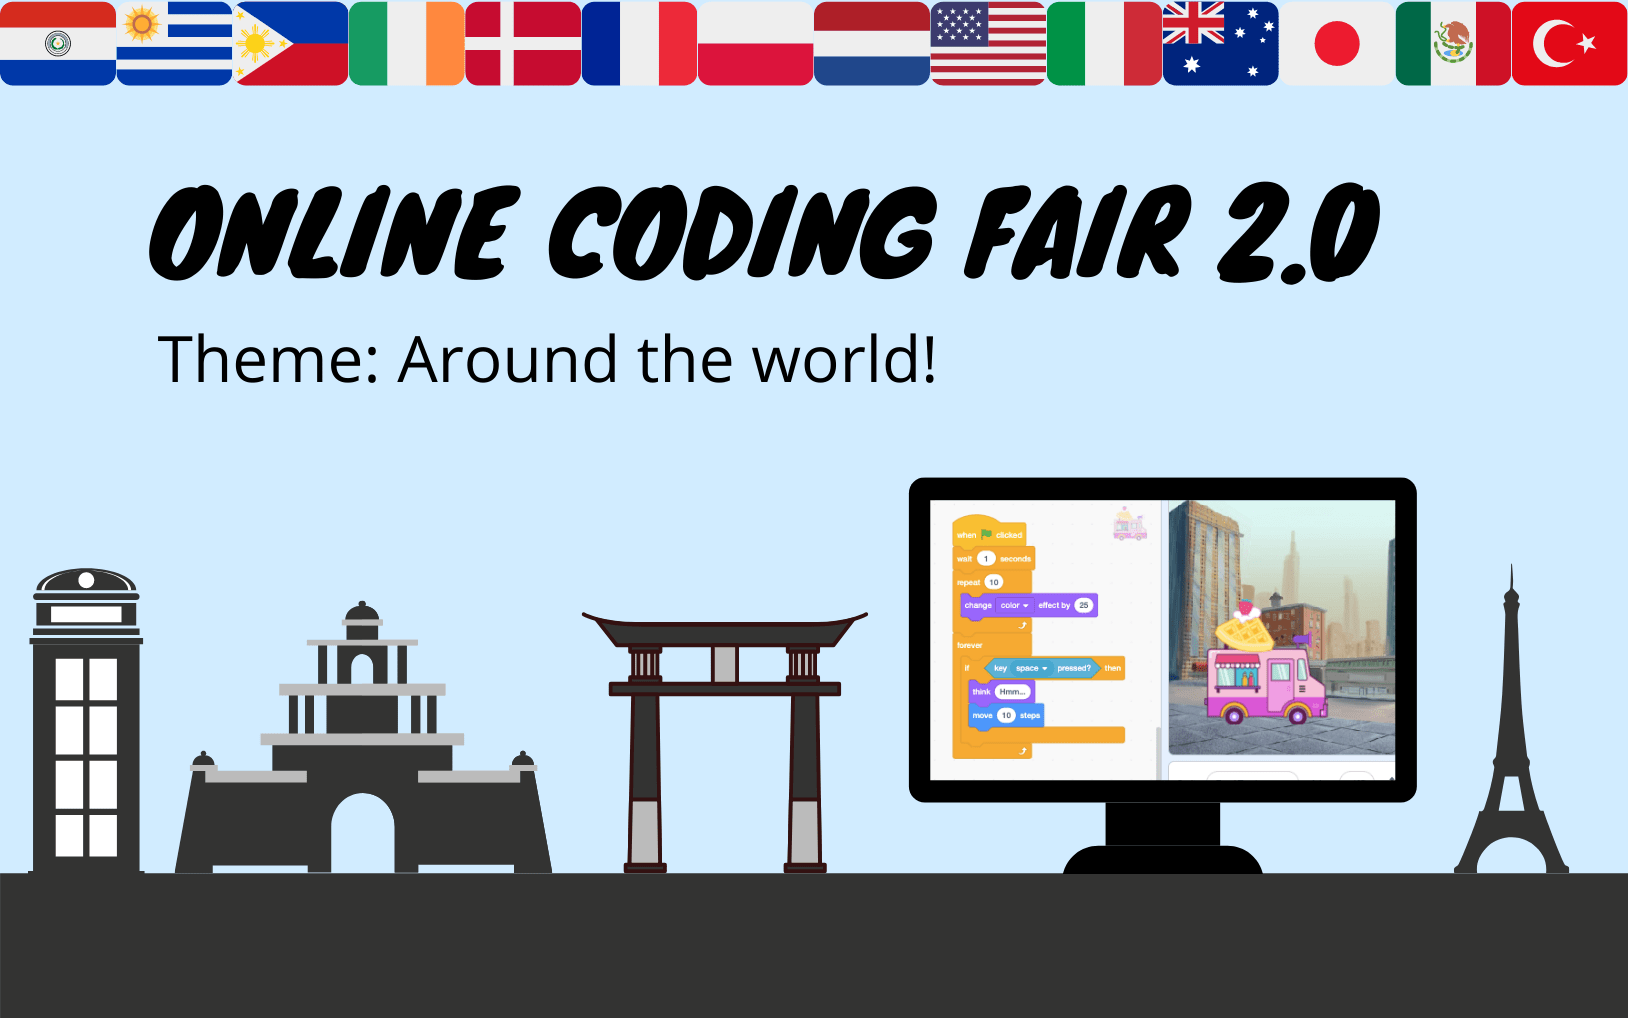 Online Coding Fair 2.0 - Around the World!